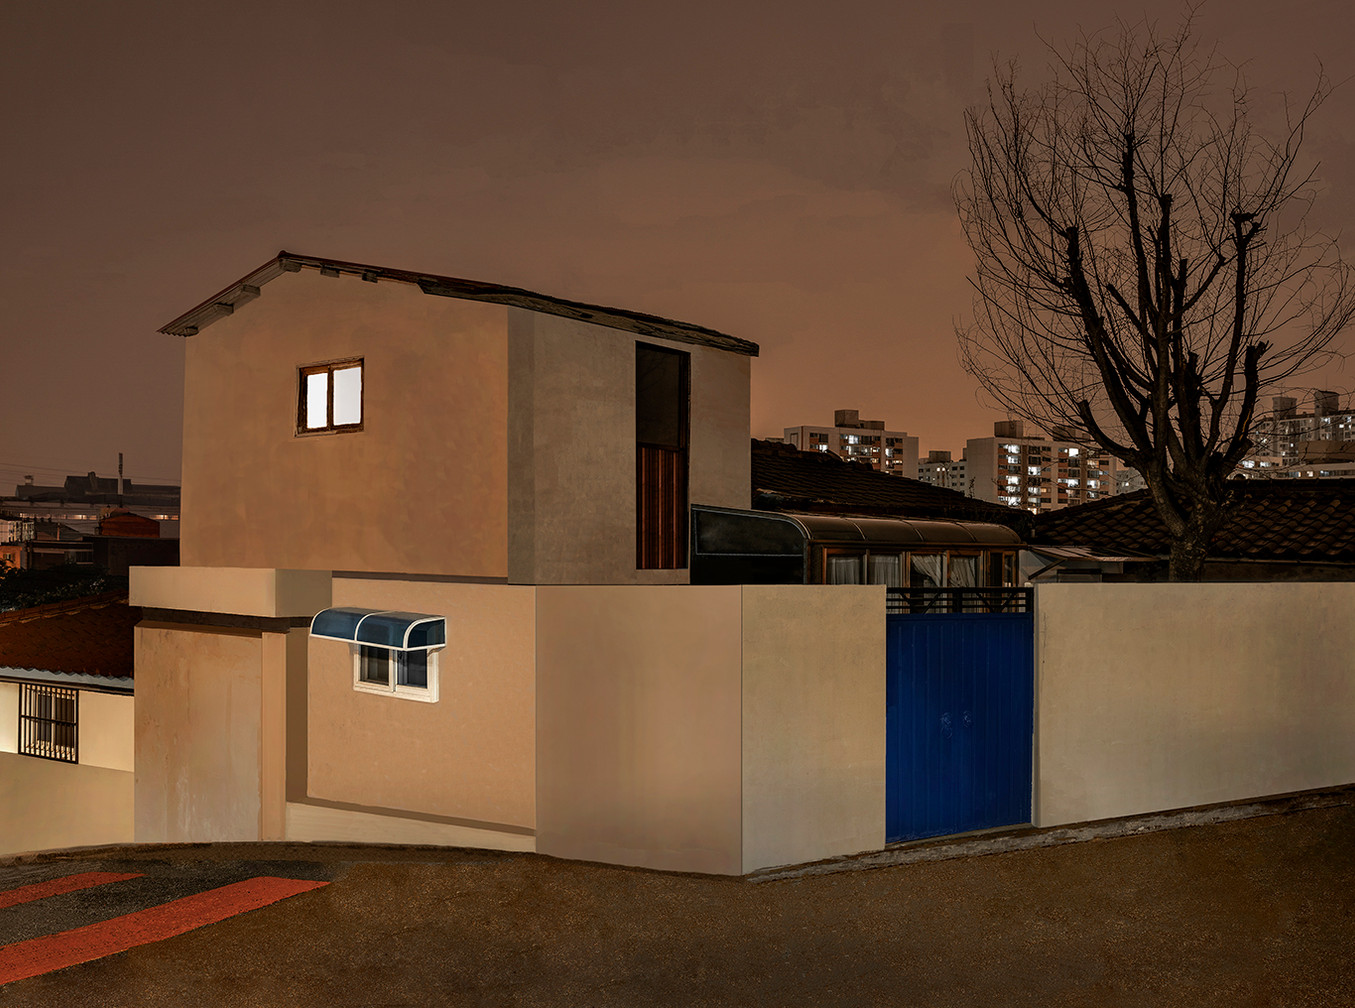 The Houses at Night #36